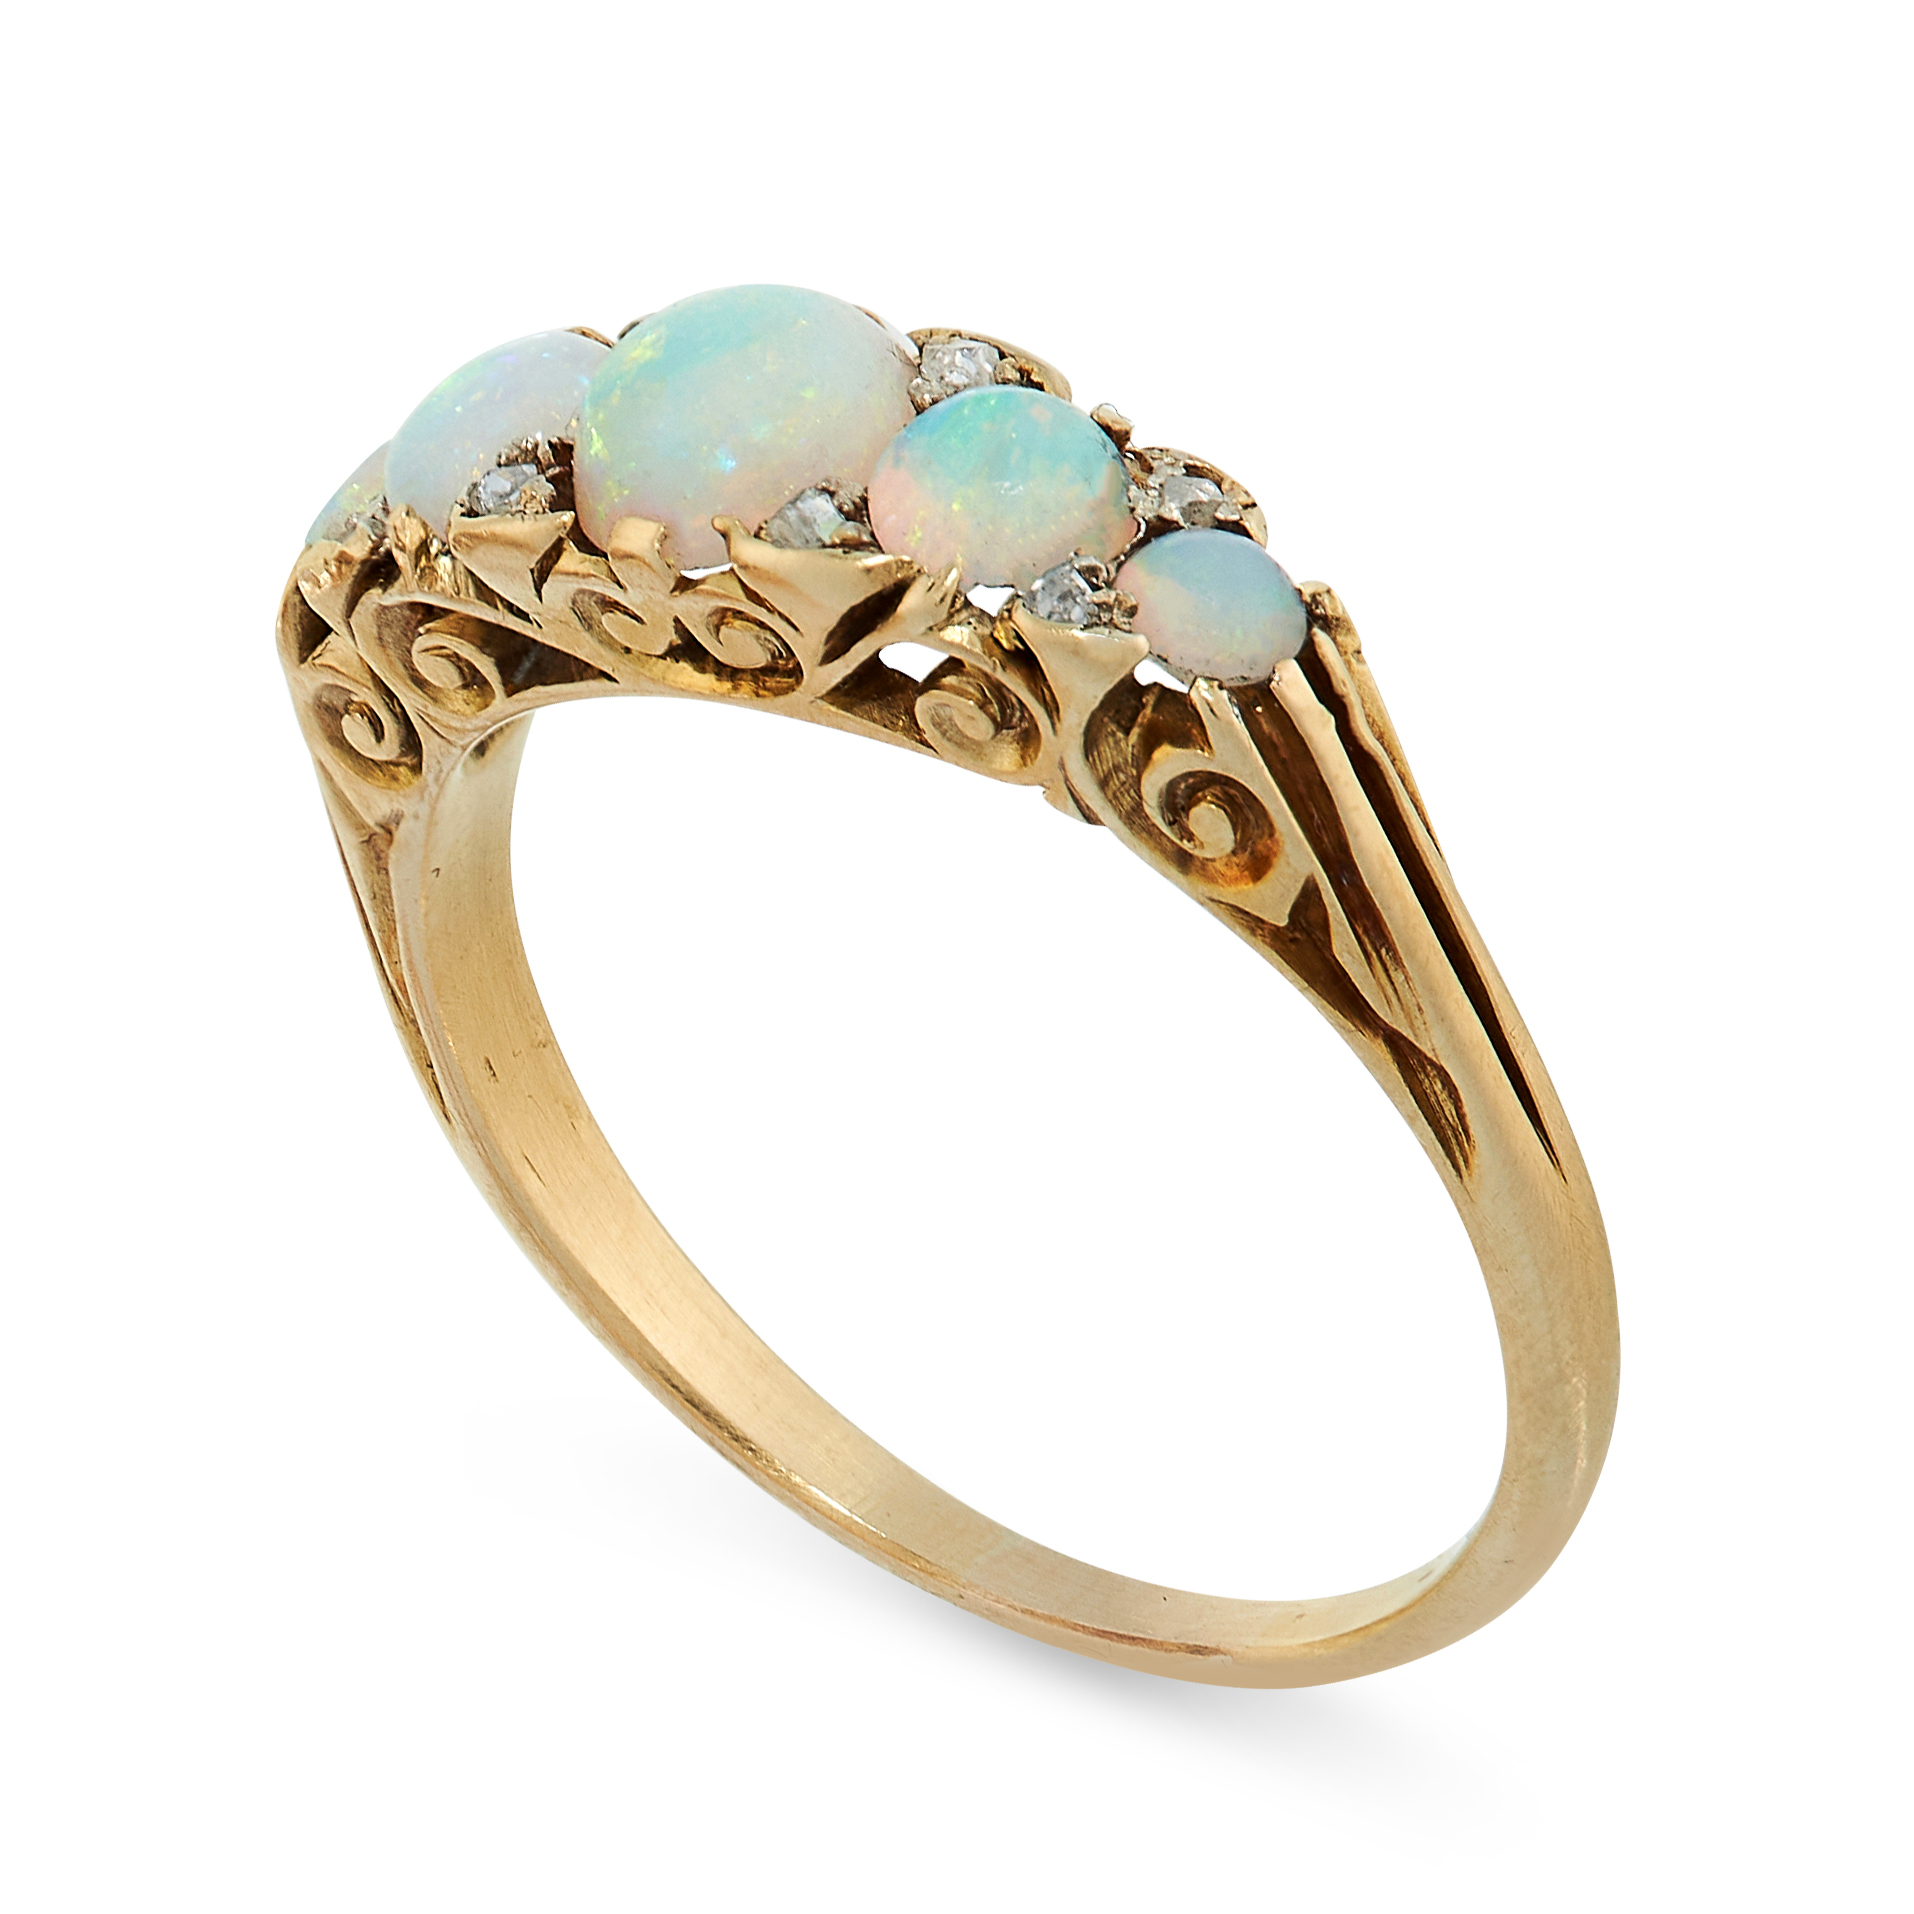 ANTIQUE OPAL AND DIAMOND RING in yellow gold, comprising of five cabochon opals accented by rose cut - Image 2 of 2